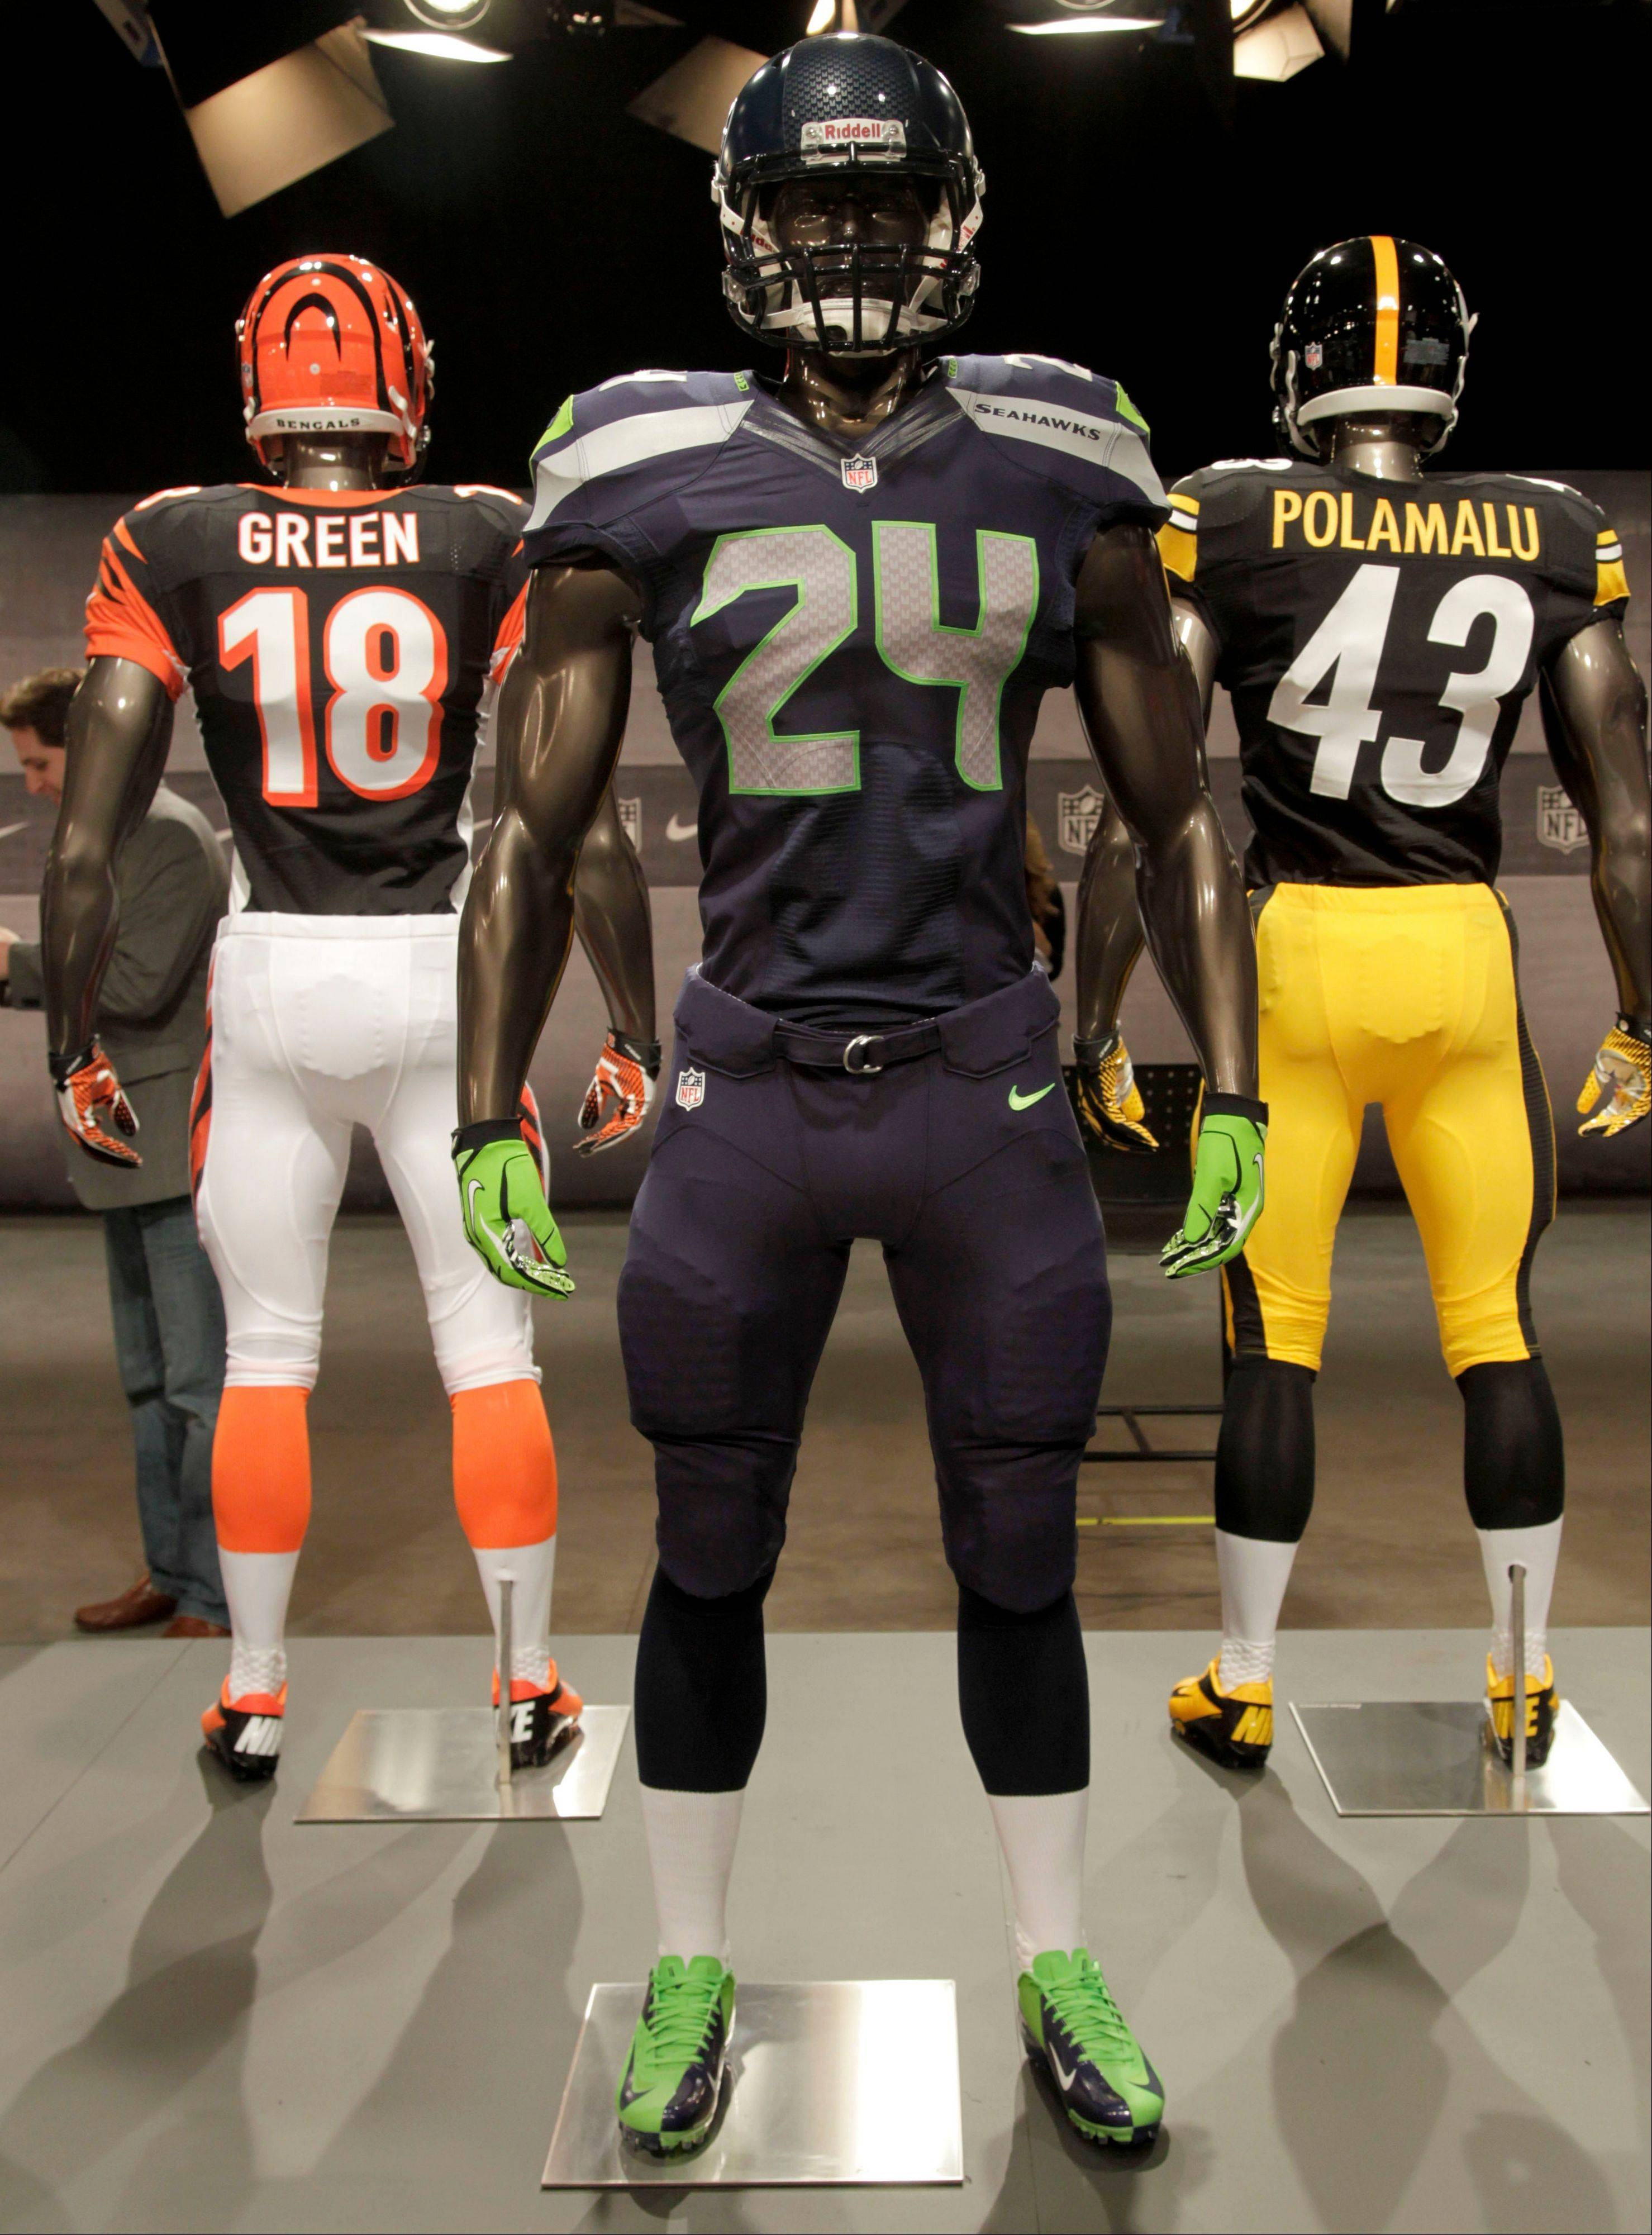 The new Seattle Seahawks uniform, foreground, Pittsburgh Steelers, rear right, and Cincinnati Bengals, rear left, are displayed on mannequins during a presentation in New York, Tuesday, April 3, 2012. The NFL and Nike showed off the new gear in grand style with a gridiron-themed fashion show at a Brooklyn film studio.